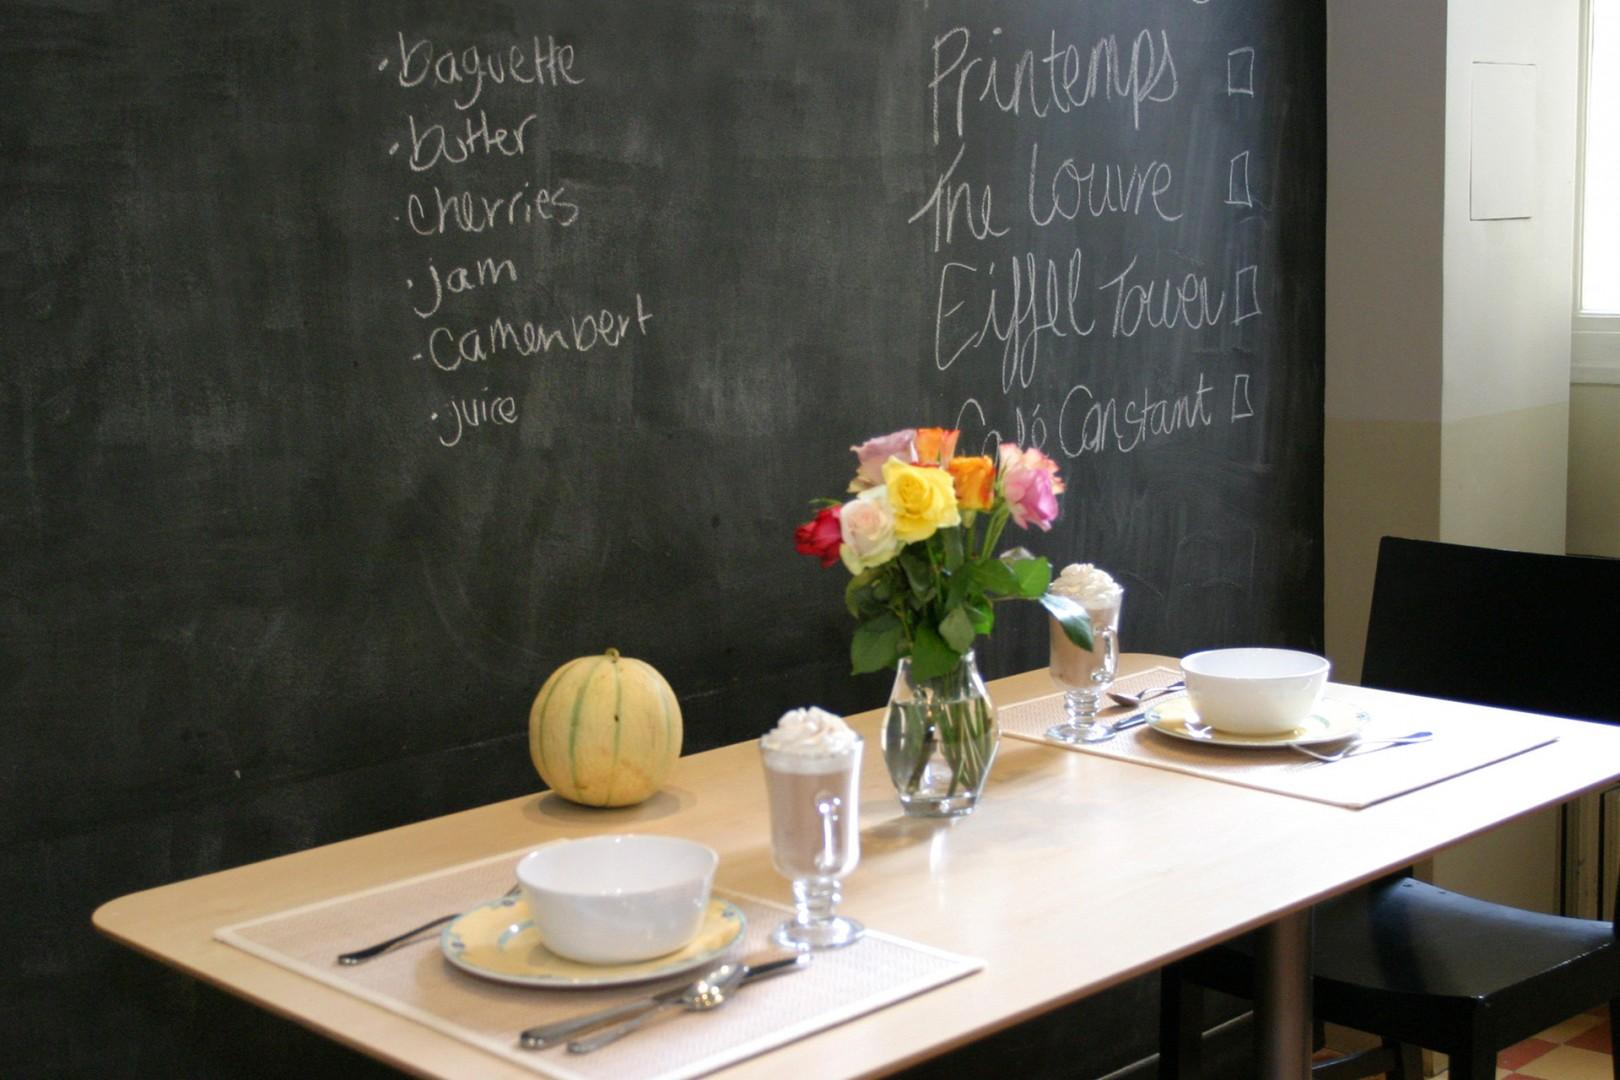 Plan your days on the kitchen blackboard behind the table.